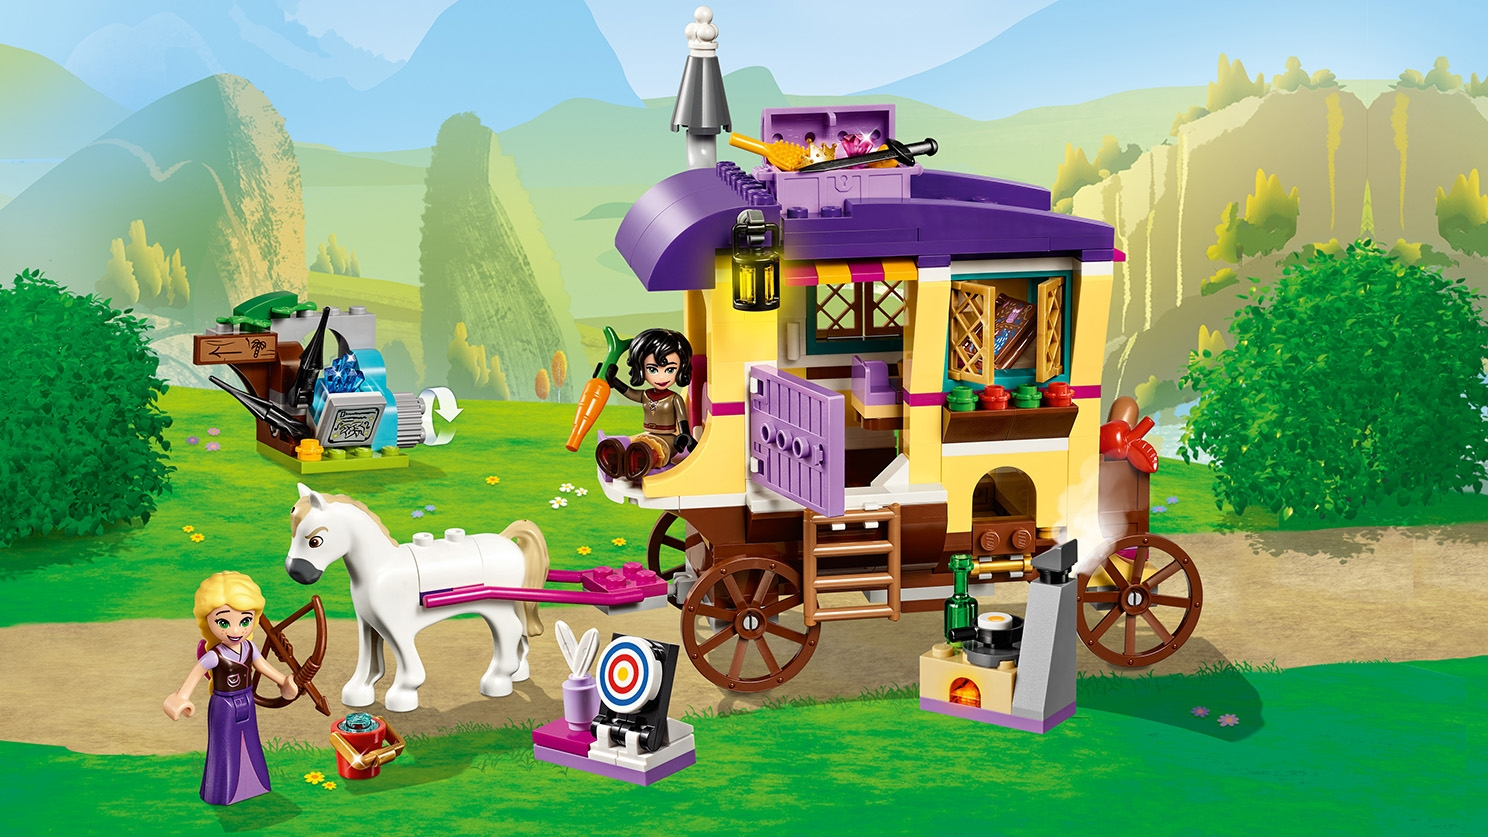 LEGO Disney - 41157 Rapunzel's Travelling Caravan - Rapunzel practice shooting with her bow while her protector Cassandra is driving the caravan with Maximus the horse.